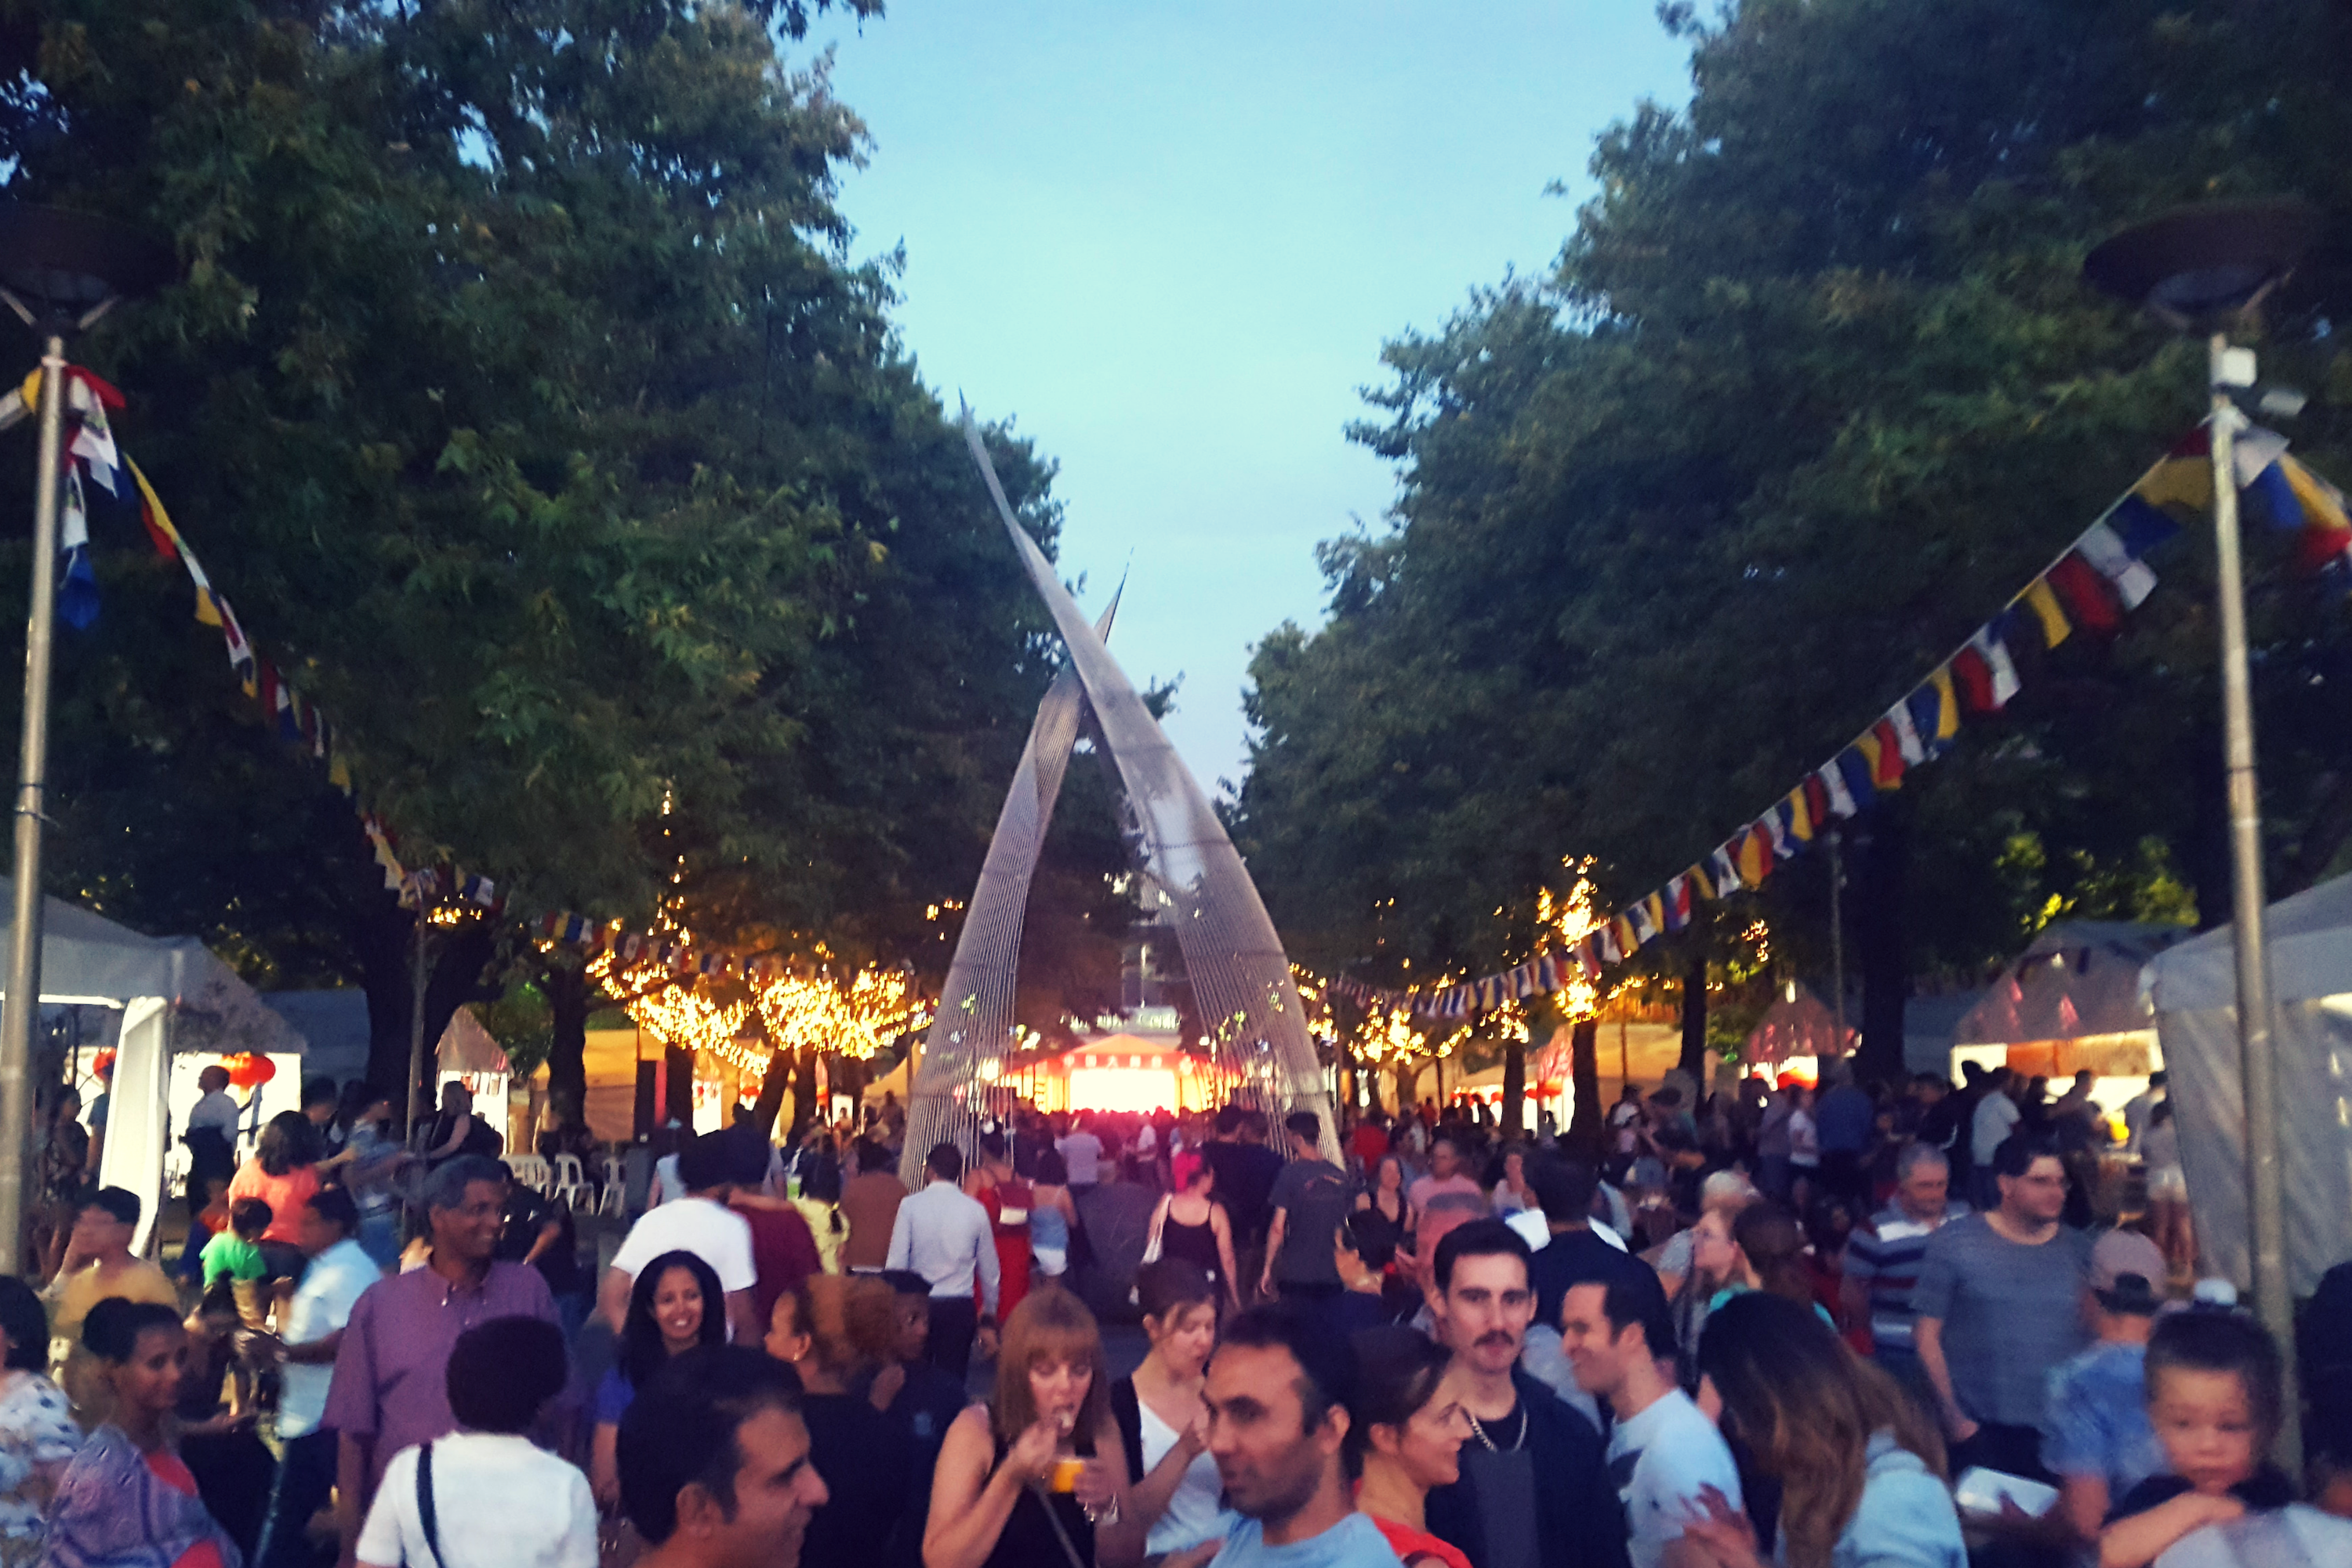 multicultural festival 2018, crowd, stalls